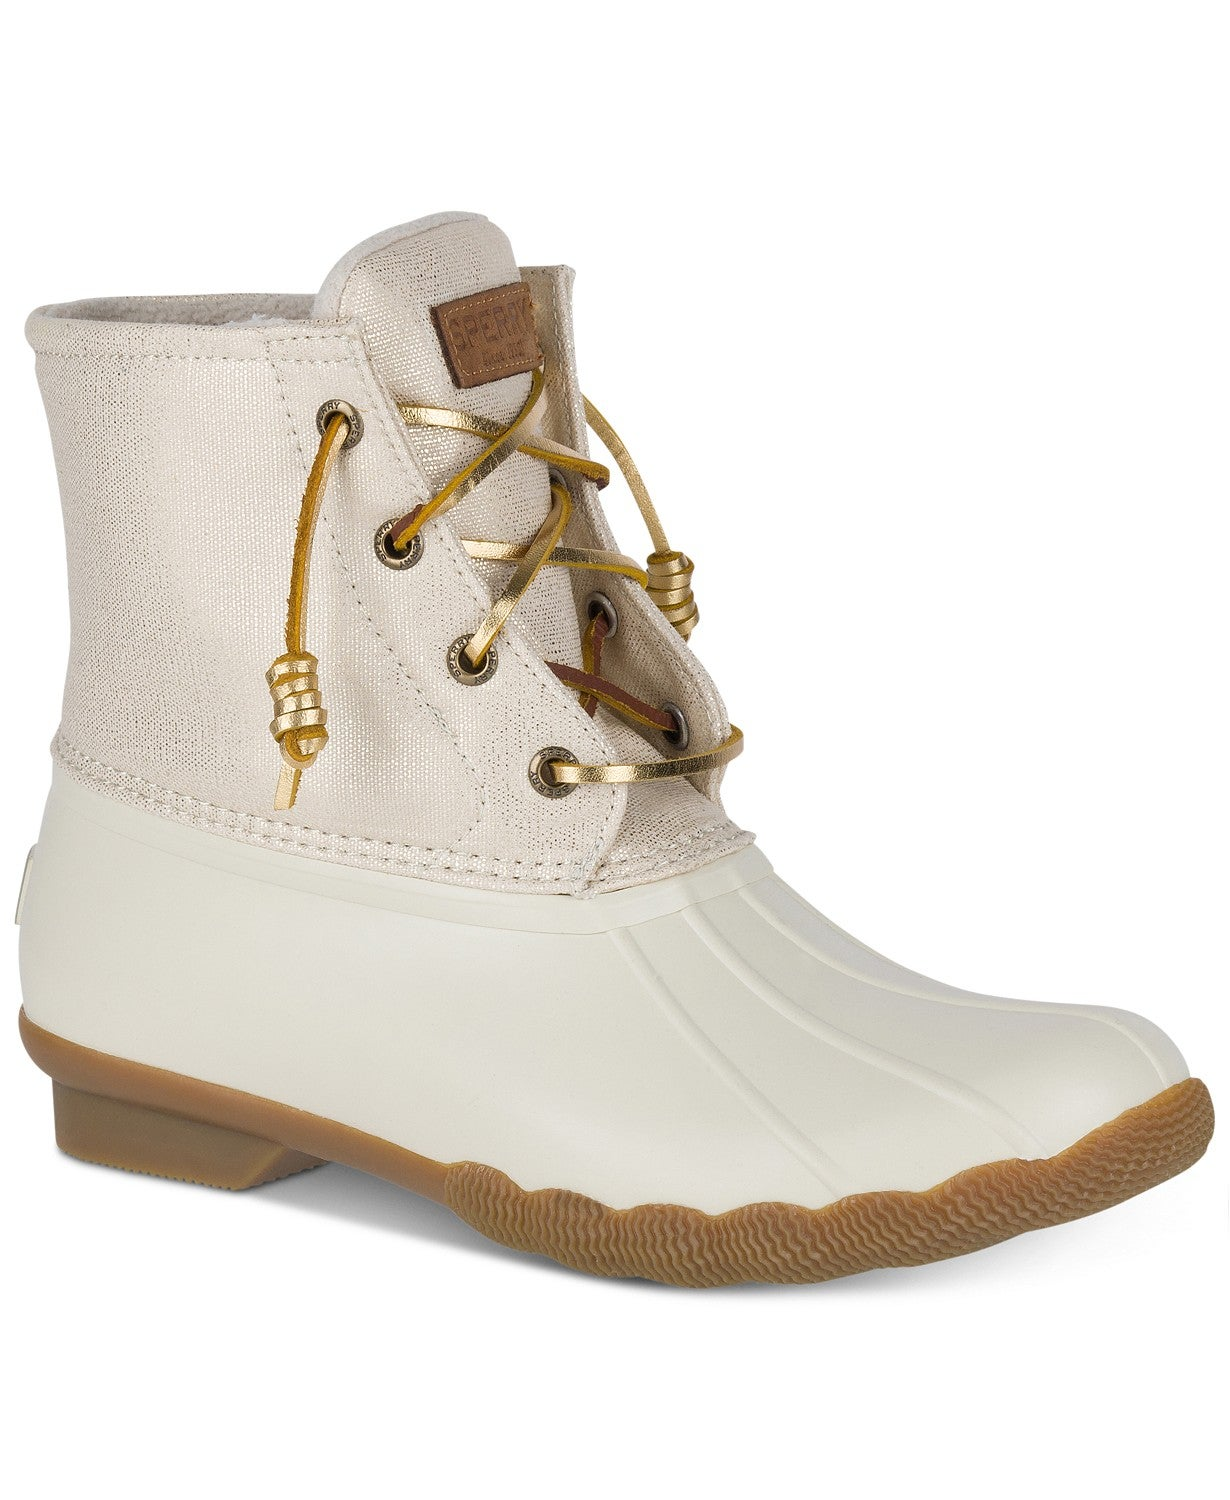 Sperry Saltwater Duck Booties, Created for Macy's